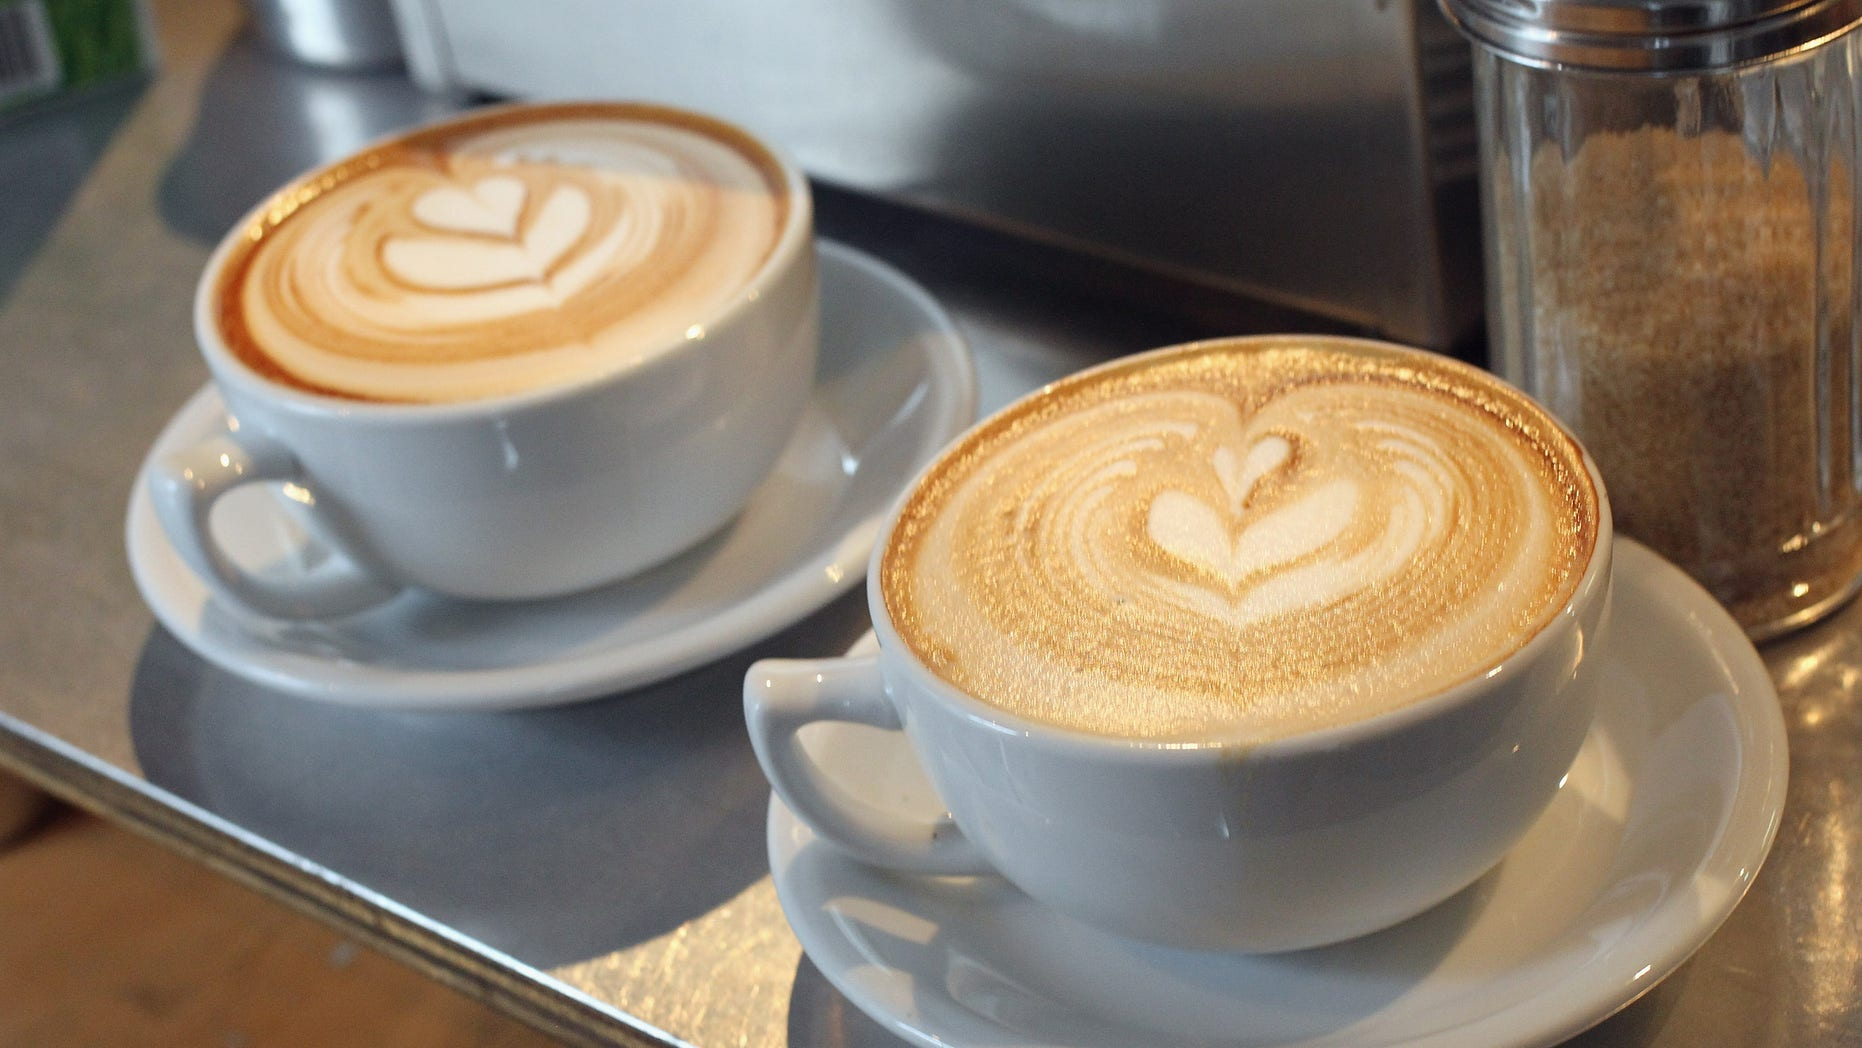 BERLIN, GERMANY - JANUARY 24:  Cups of just-brewed flat white, a variation on the classic cappuccino, stand on a counter at Bonanza Coffee Roasters on January 24, 2011 in Berlin, Germany. Bonanza founder Kiduk Reus is among a growing number of so-called third wave artisinal coffee bean roasters who are finding a niche market in Europe and the USA for their carefully-crafted and expensive coffee. Reus insists that the cast iron parts, the slow-roasting abilities and hands-on controls of his flame-roasting, refurbished 1918 Probat machine allow him to develop the most flavour from his carefully selected beans.  (Photo by Sean Gallup/Getty Images)